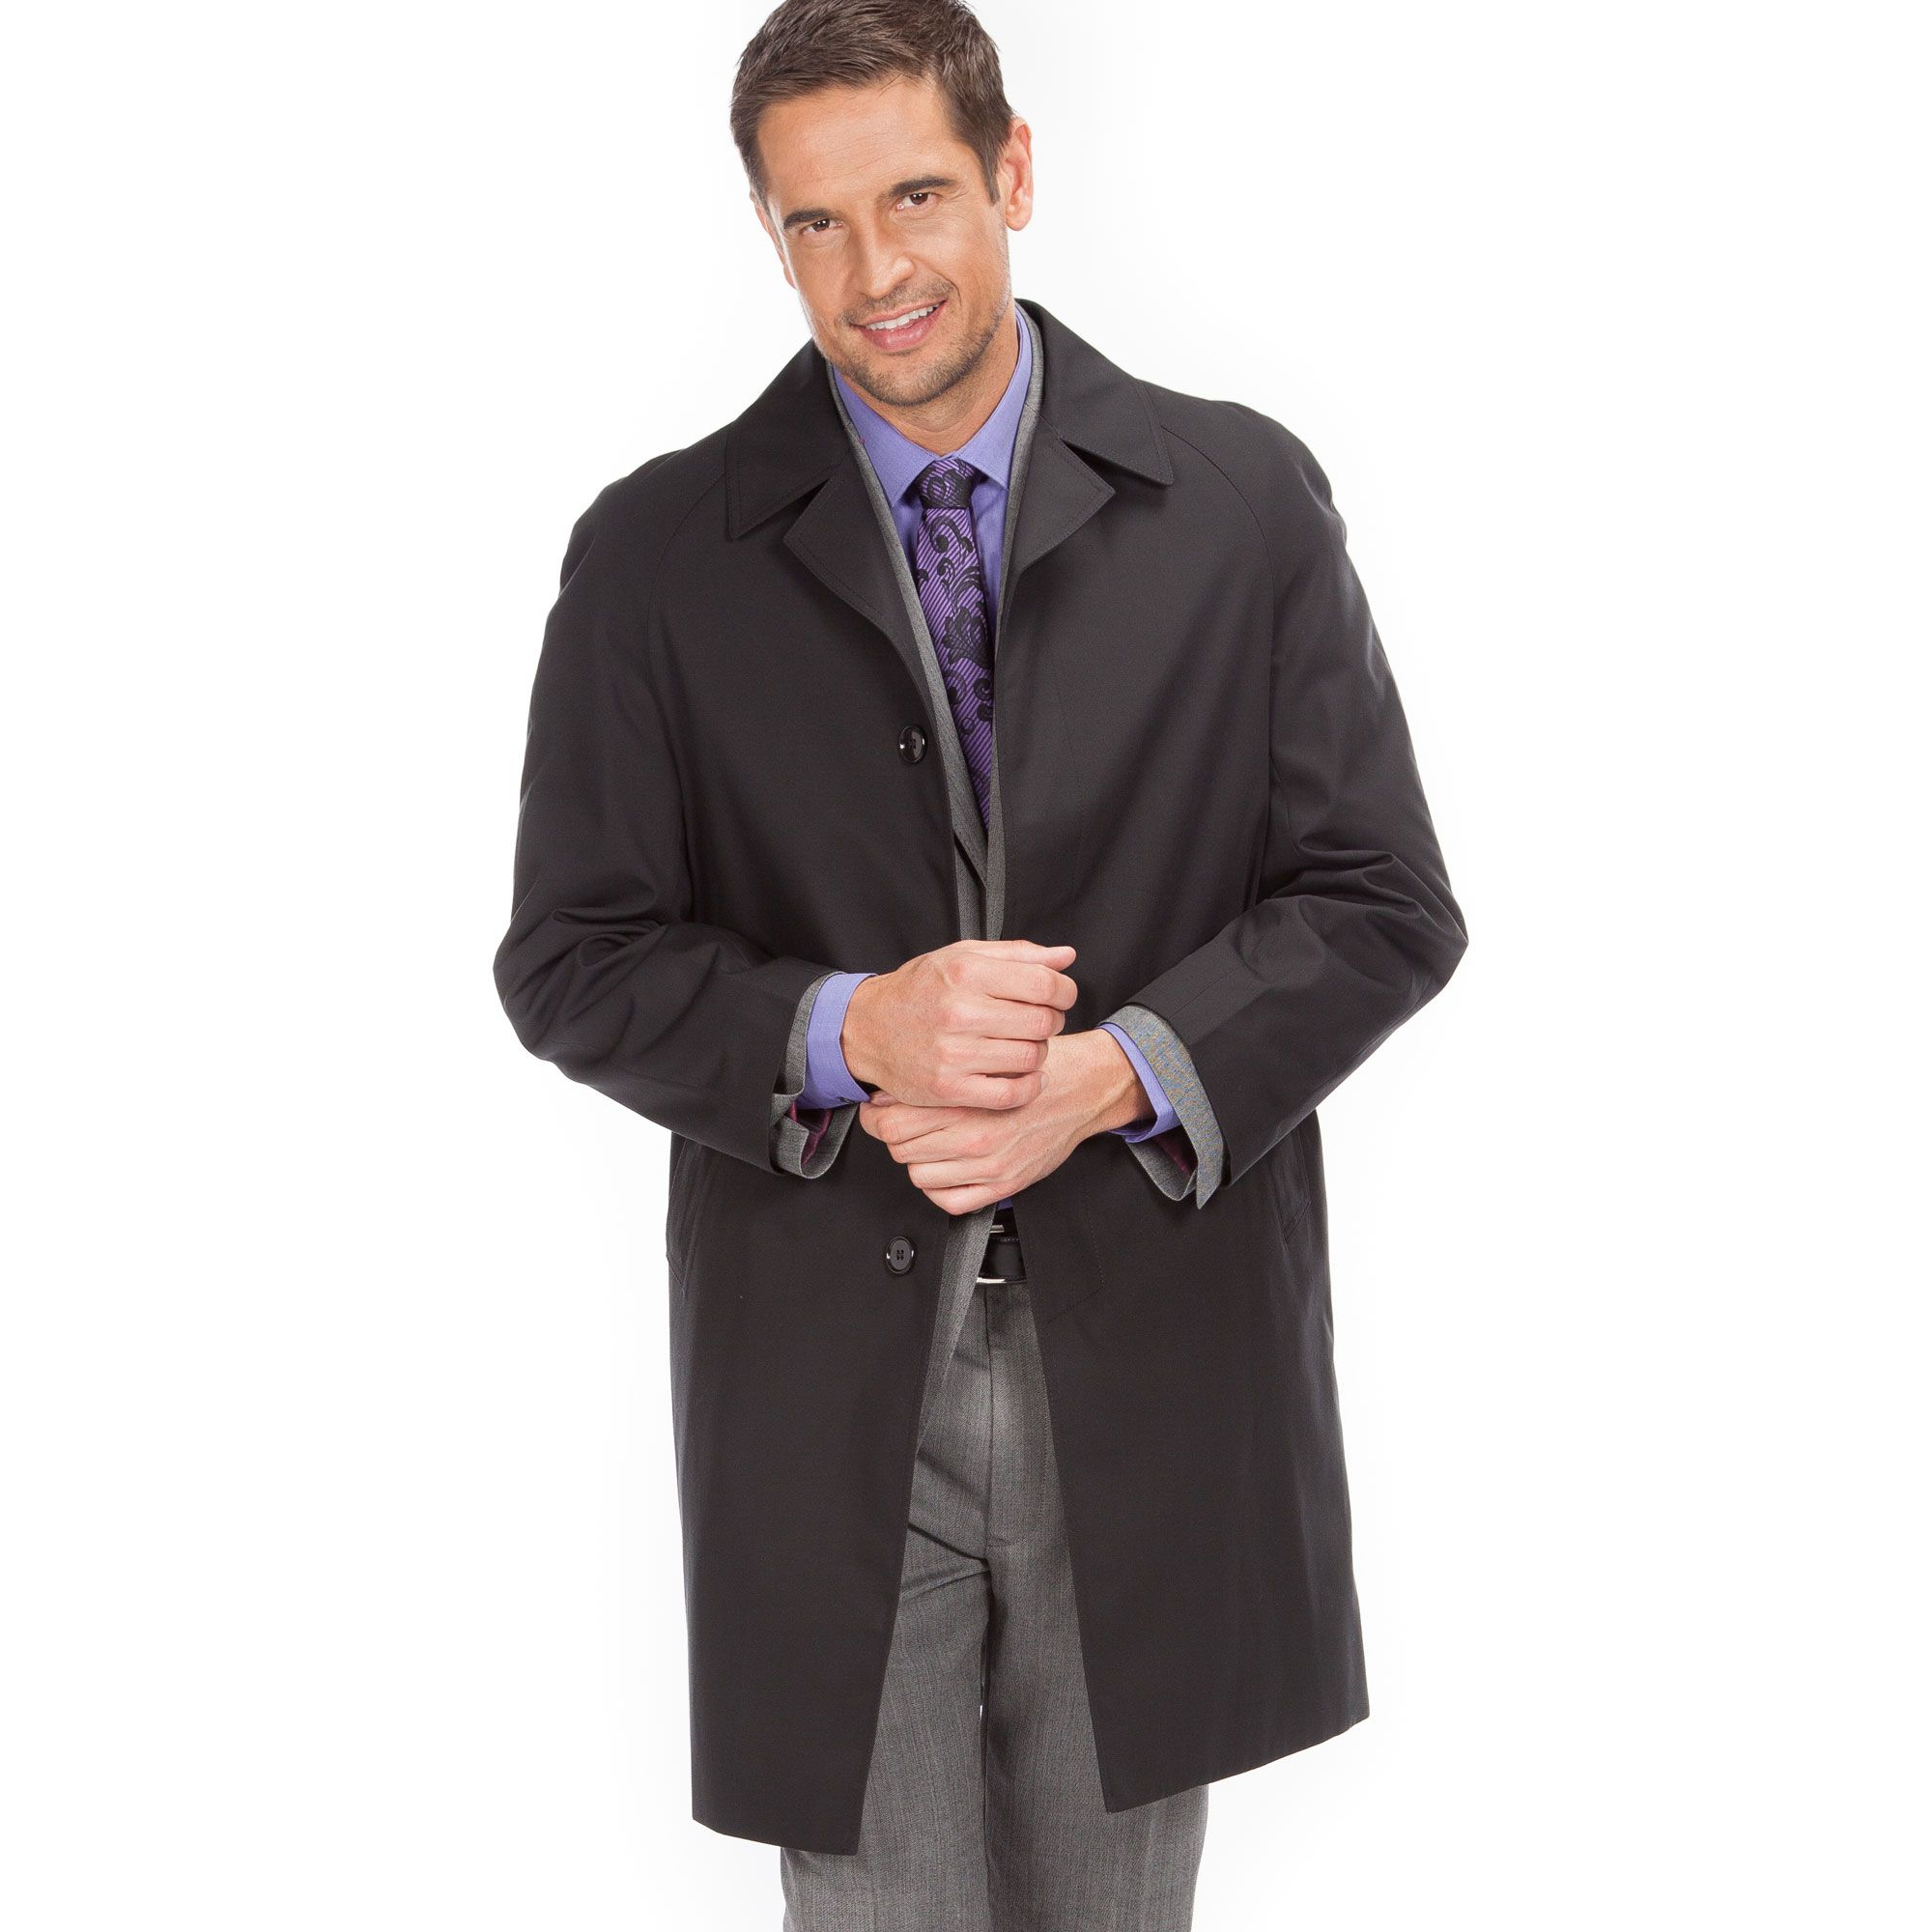 157574751e61 Ways to Wear an Overcoat | Mainline Menswear Blog